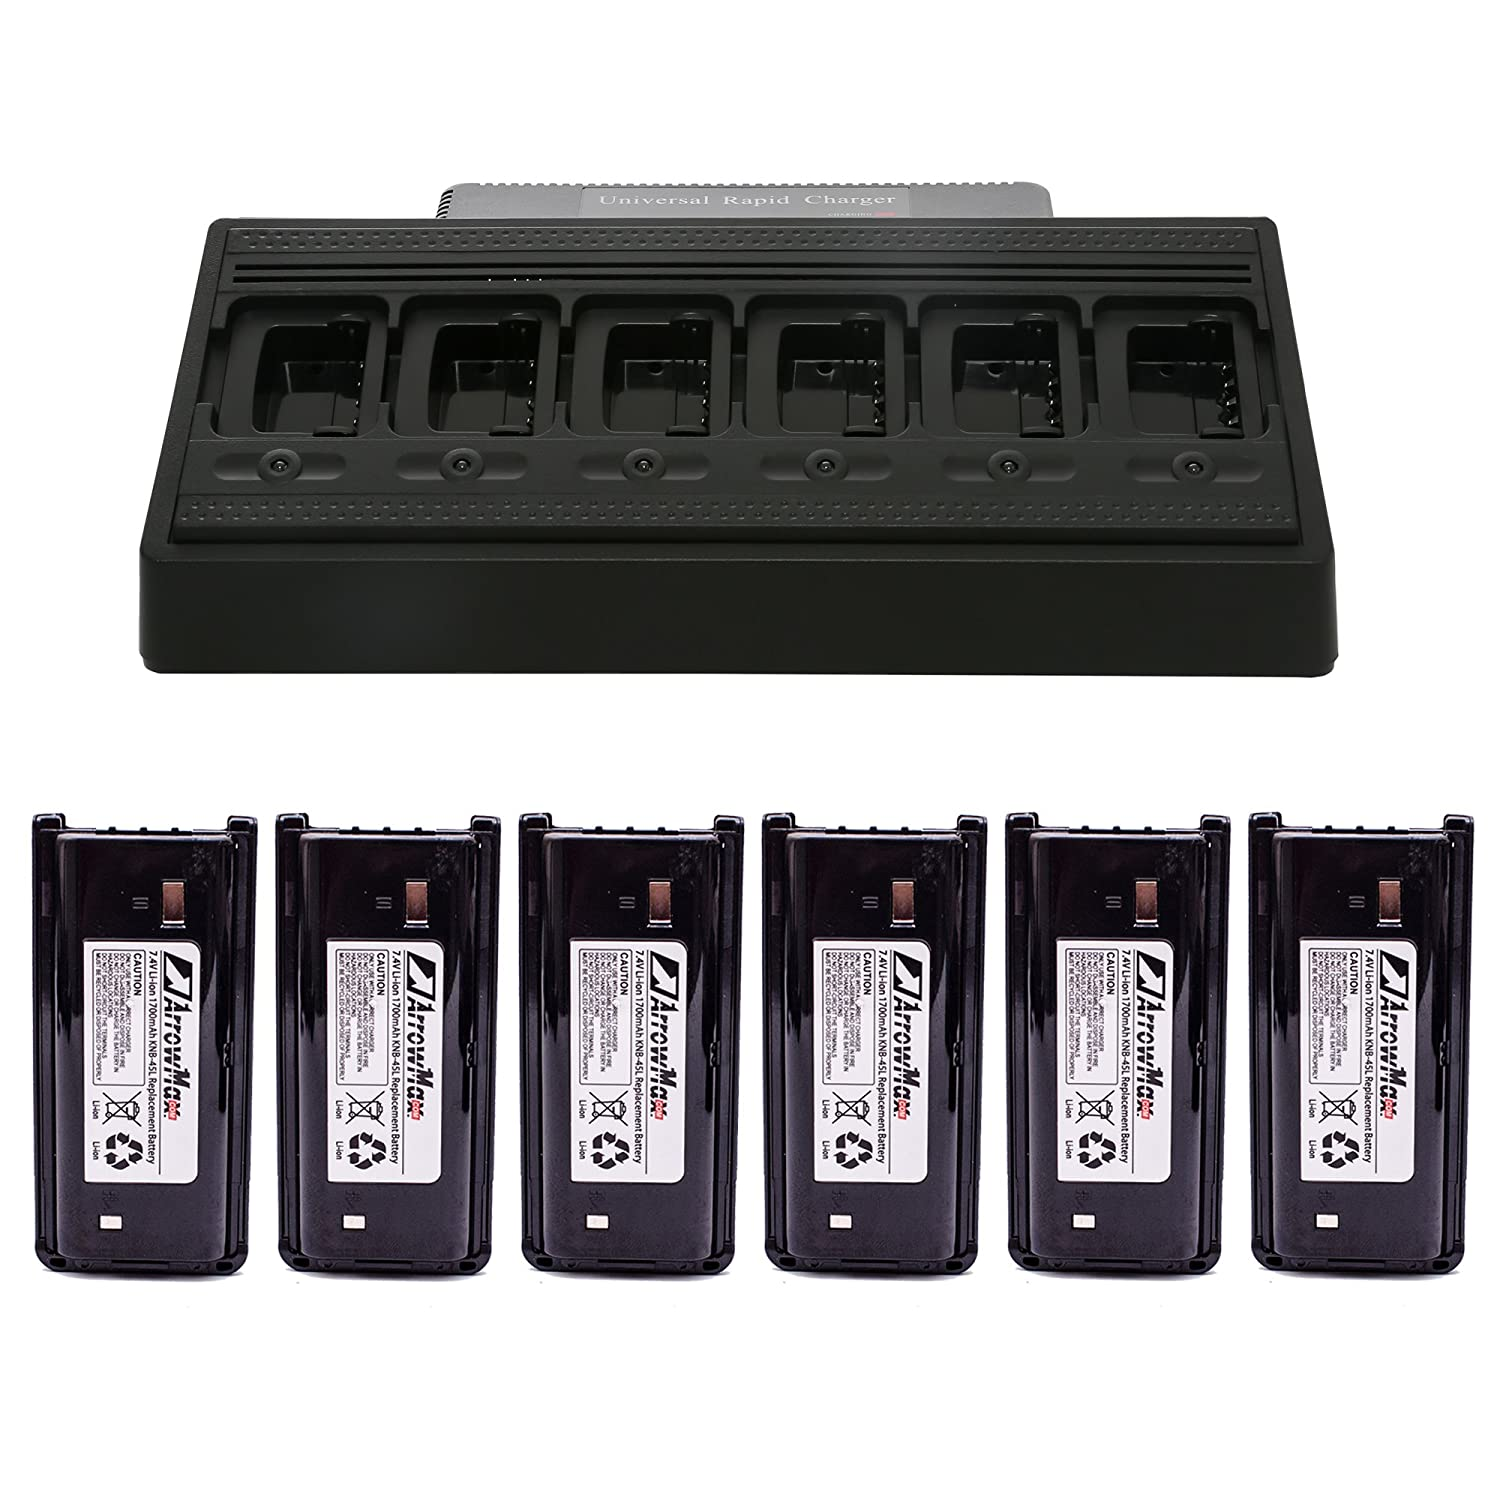 ArrowMax C6B6C0008 Battery Charger Bundle Package with 6 PCS 1700 mAH KNB-45L Battery for Kenwood